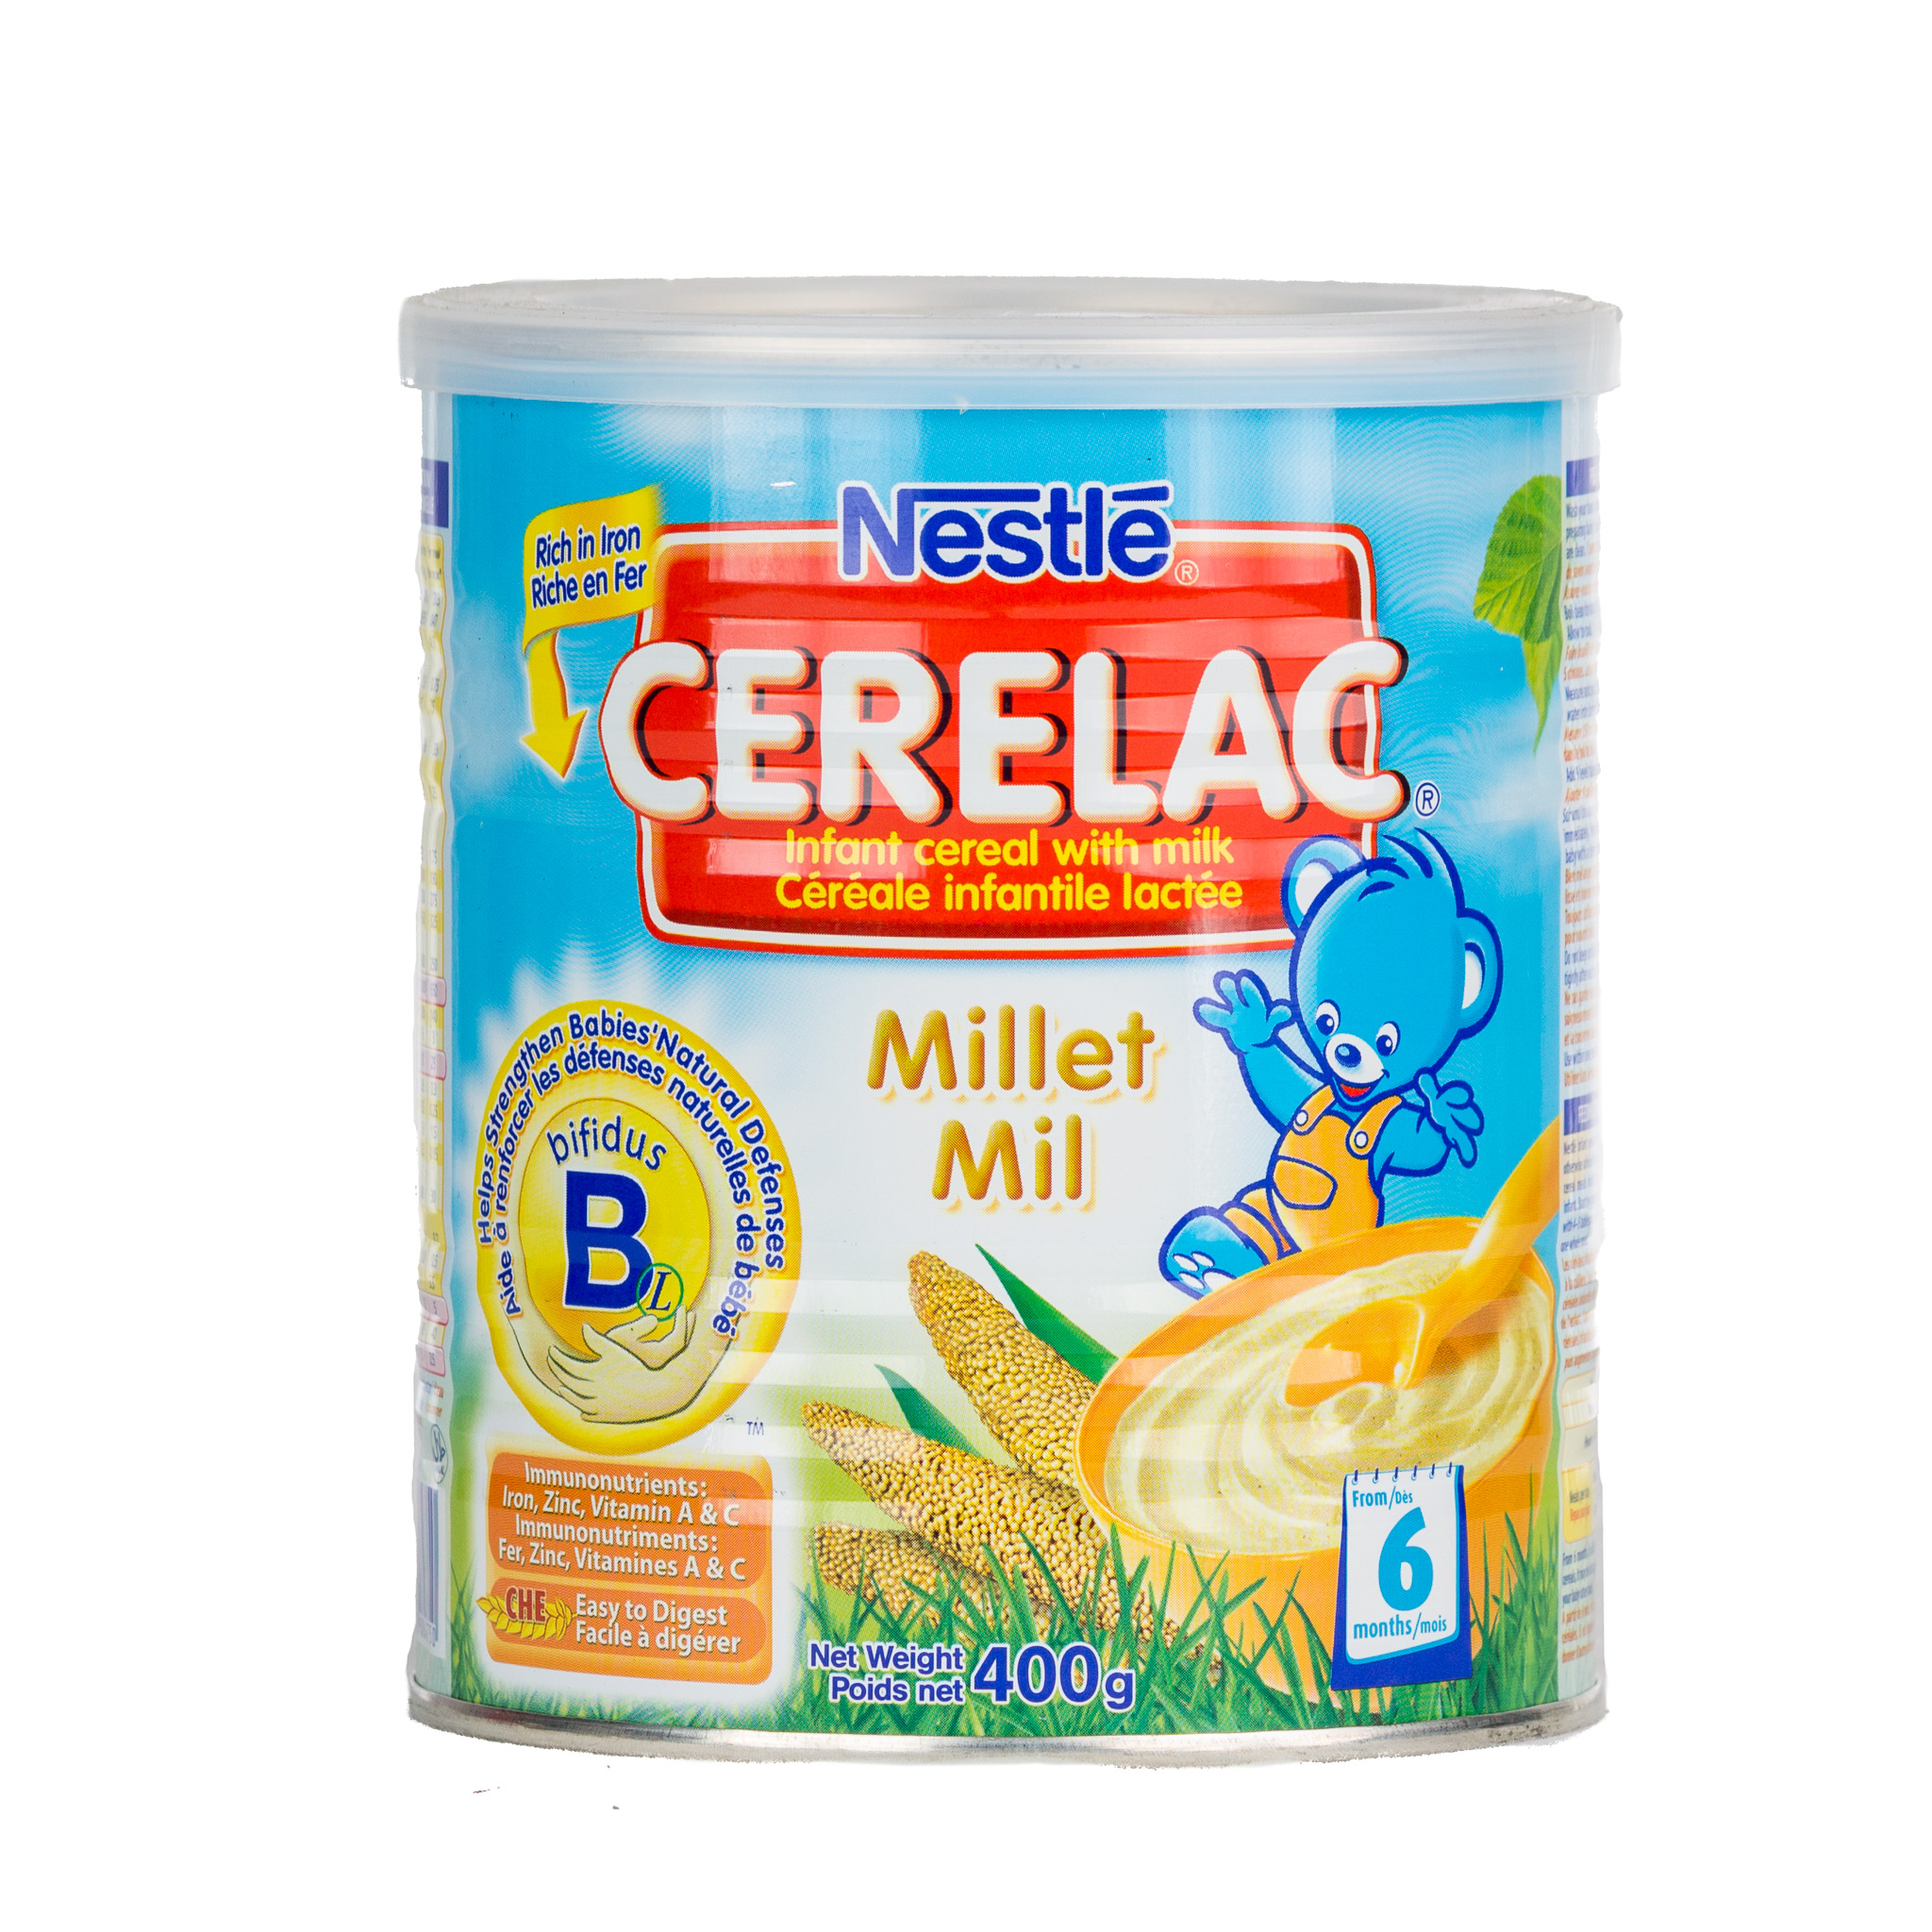 Cerelac Millet 400g �C Ghana's Foremost Online Grocery2048 x 2048 jpeg 1031kB